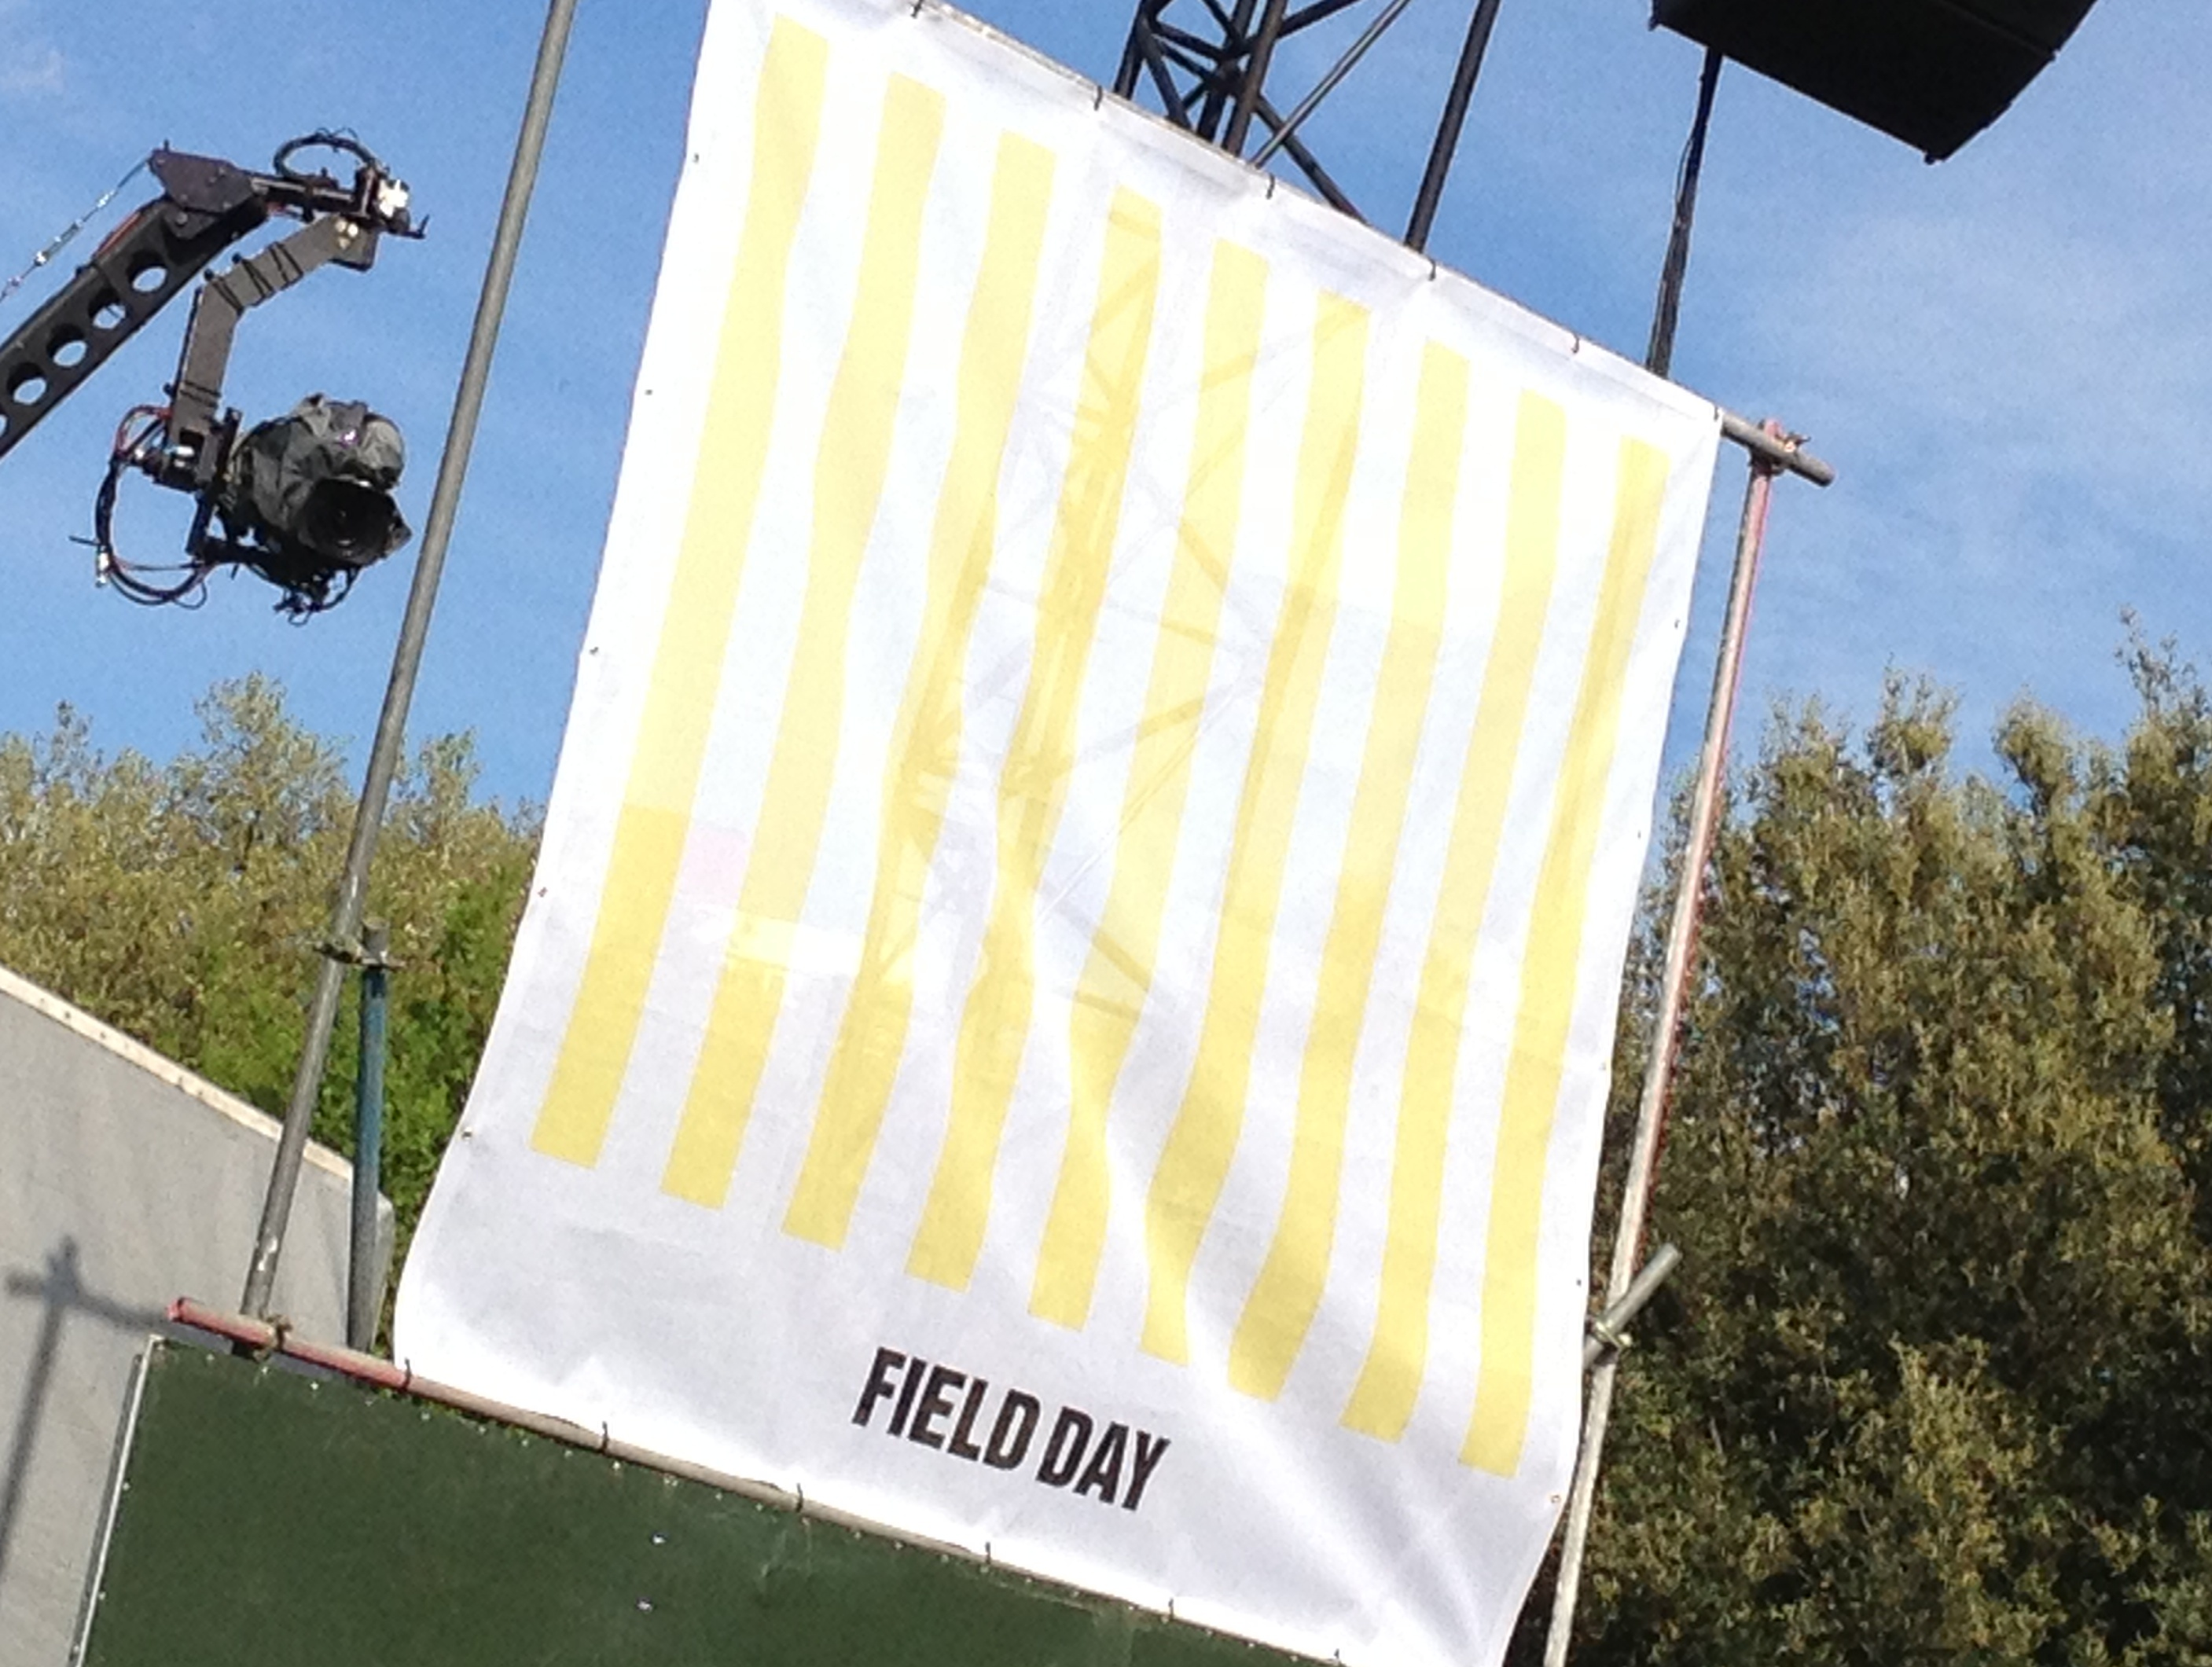 Our recommendation for your weekend: Field Day festival